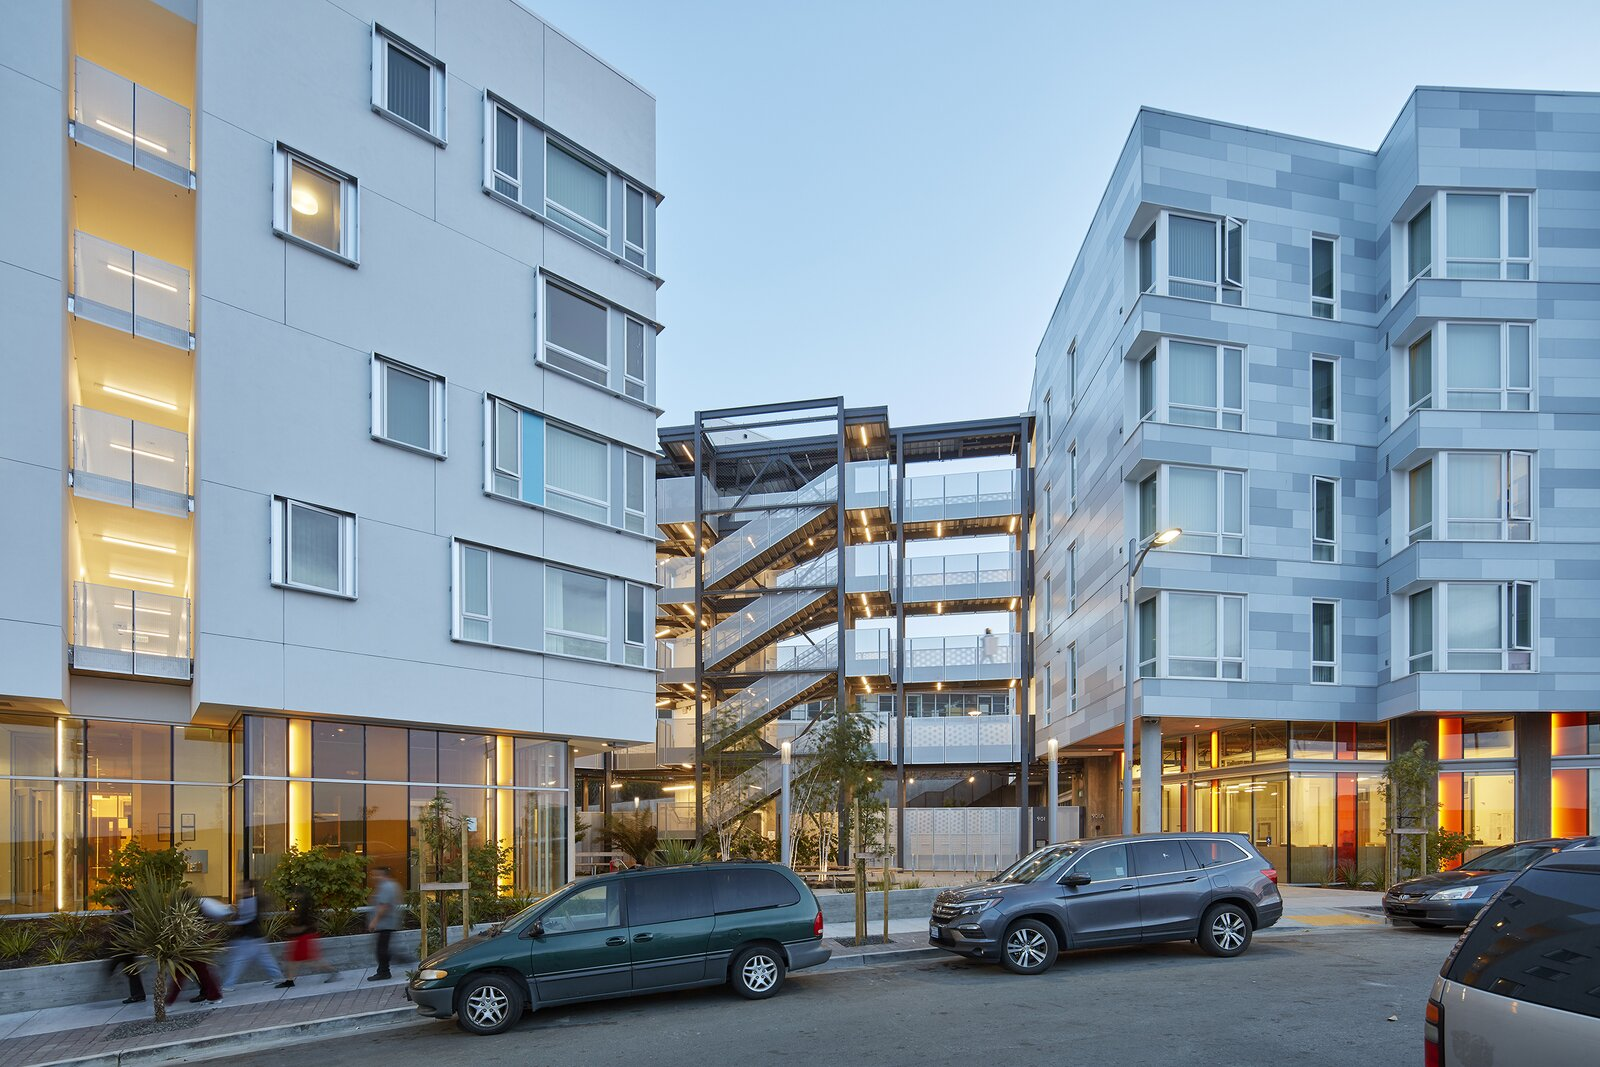 Photo 2 of 8 in 901 Fairfax Avenue by David Baker Architects